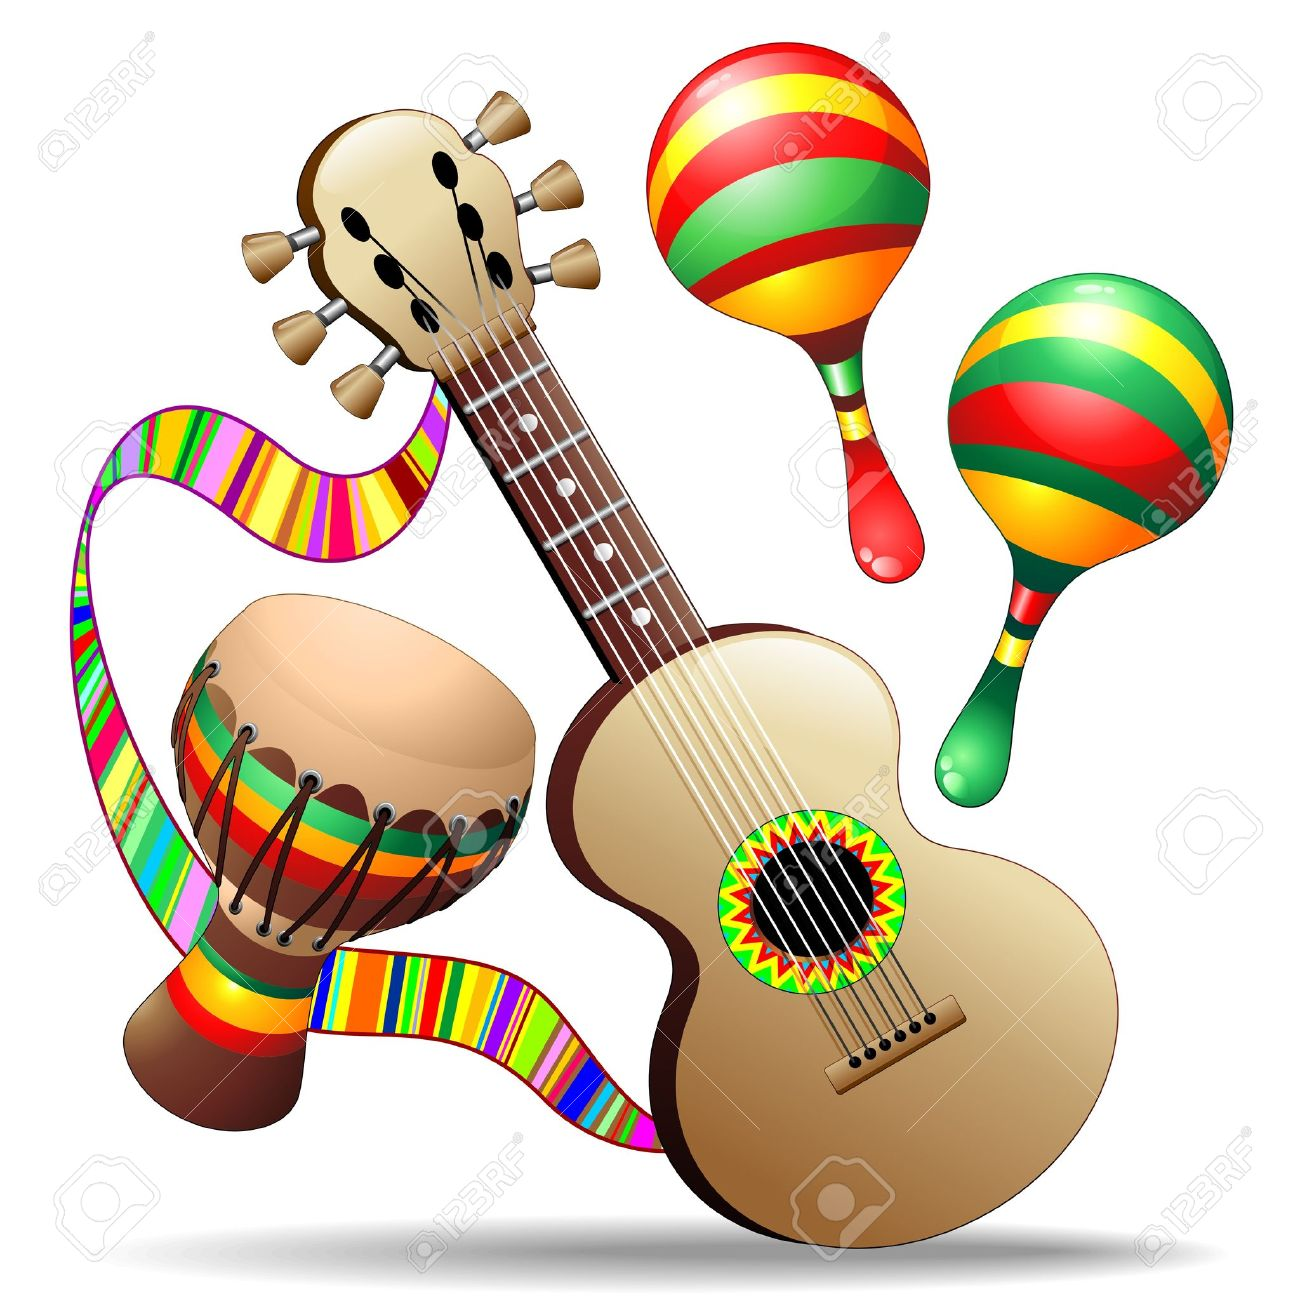 Image result for clip art instrumentos musicales